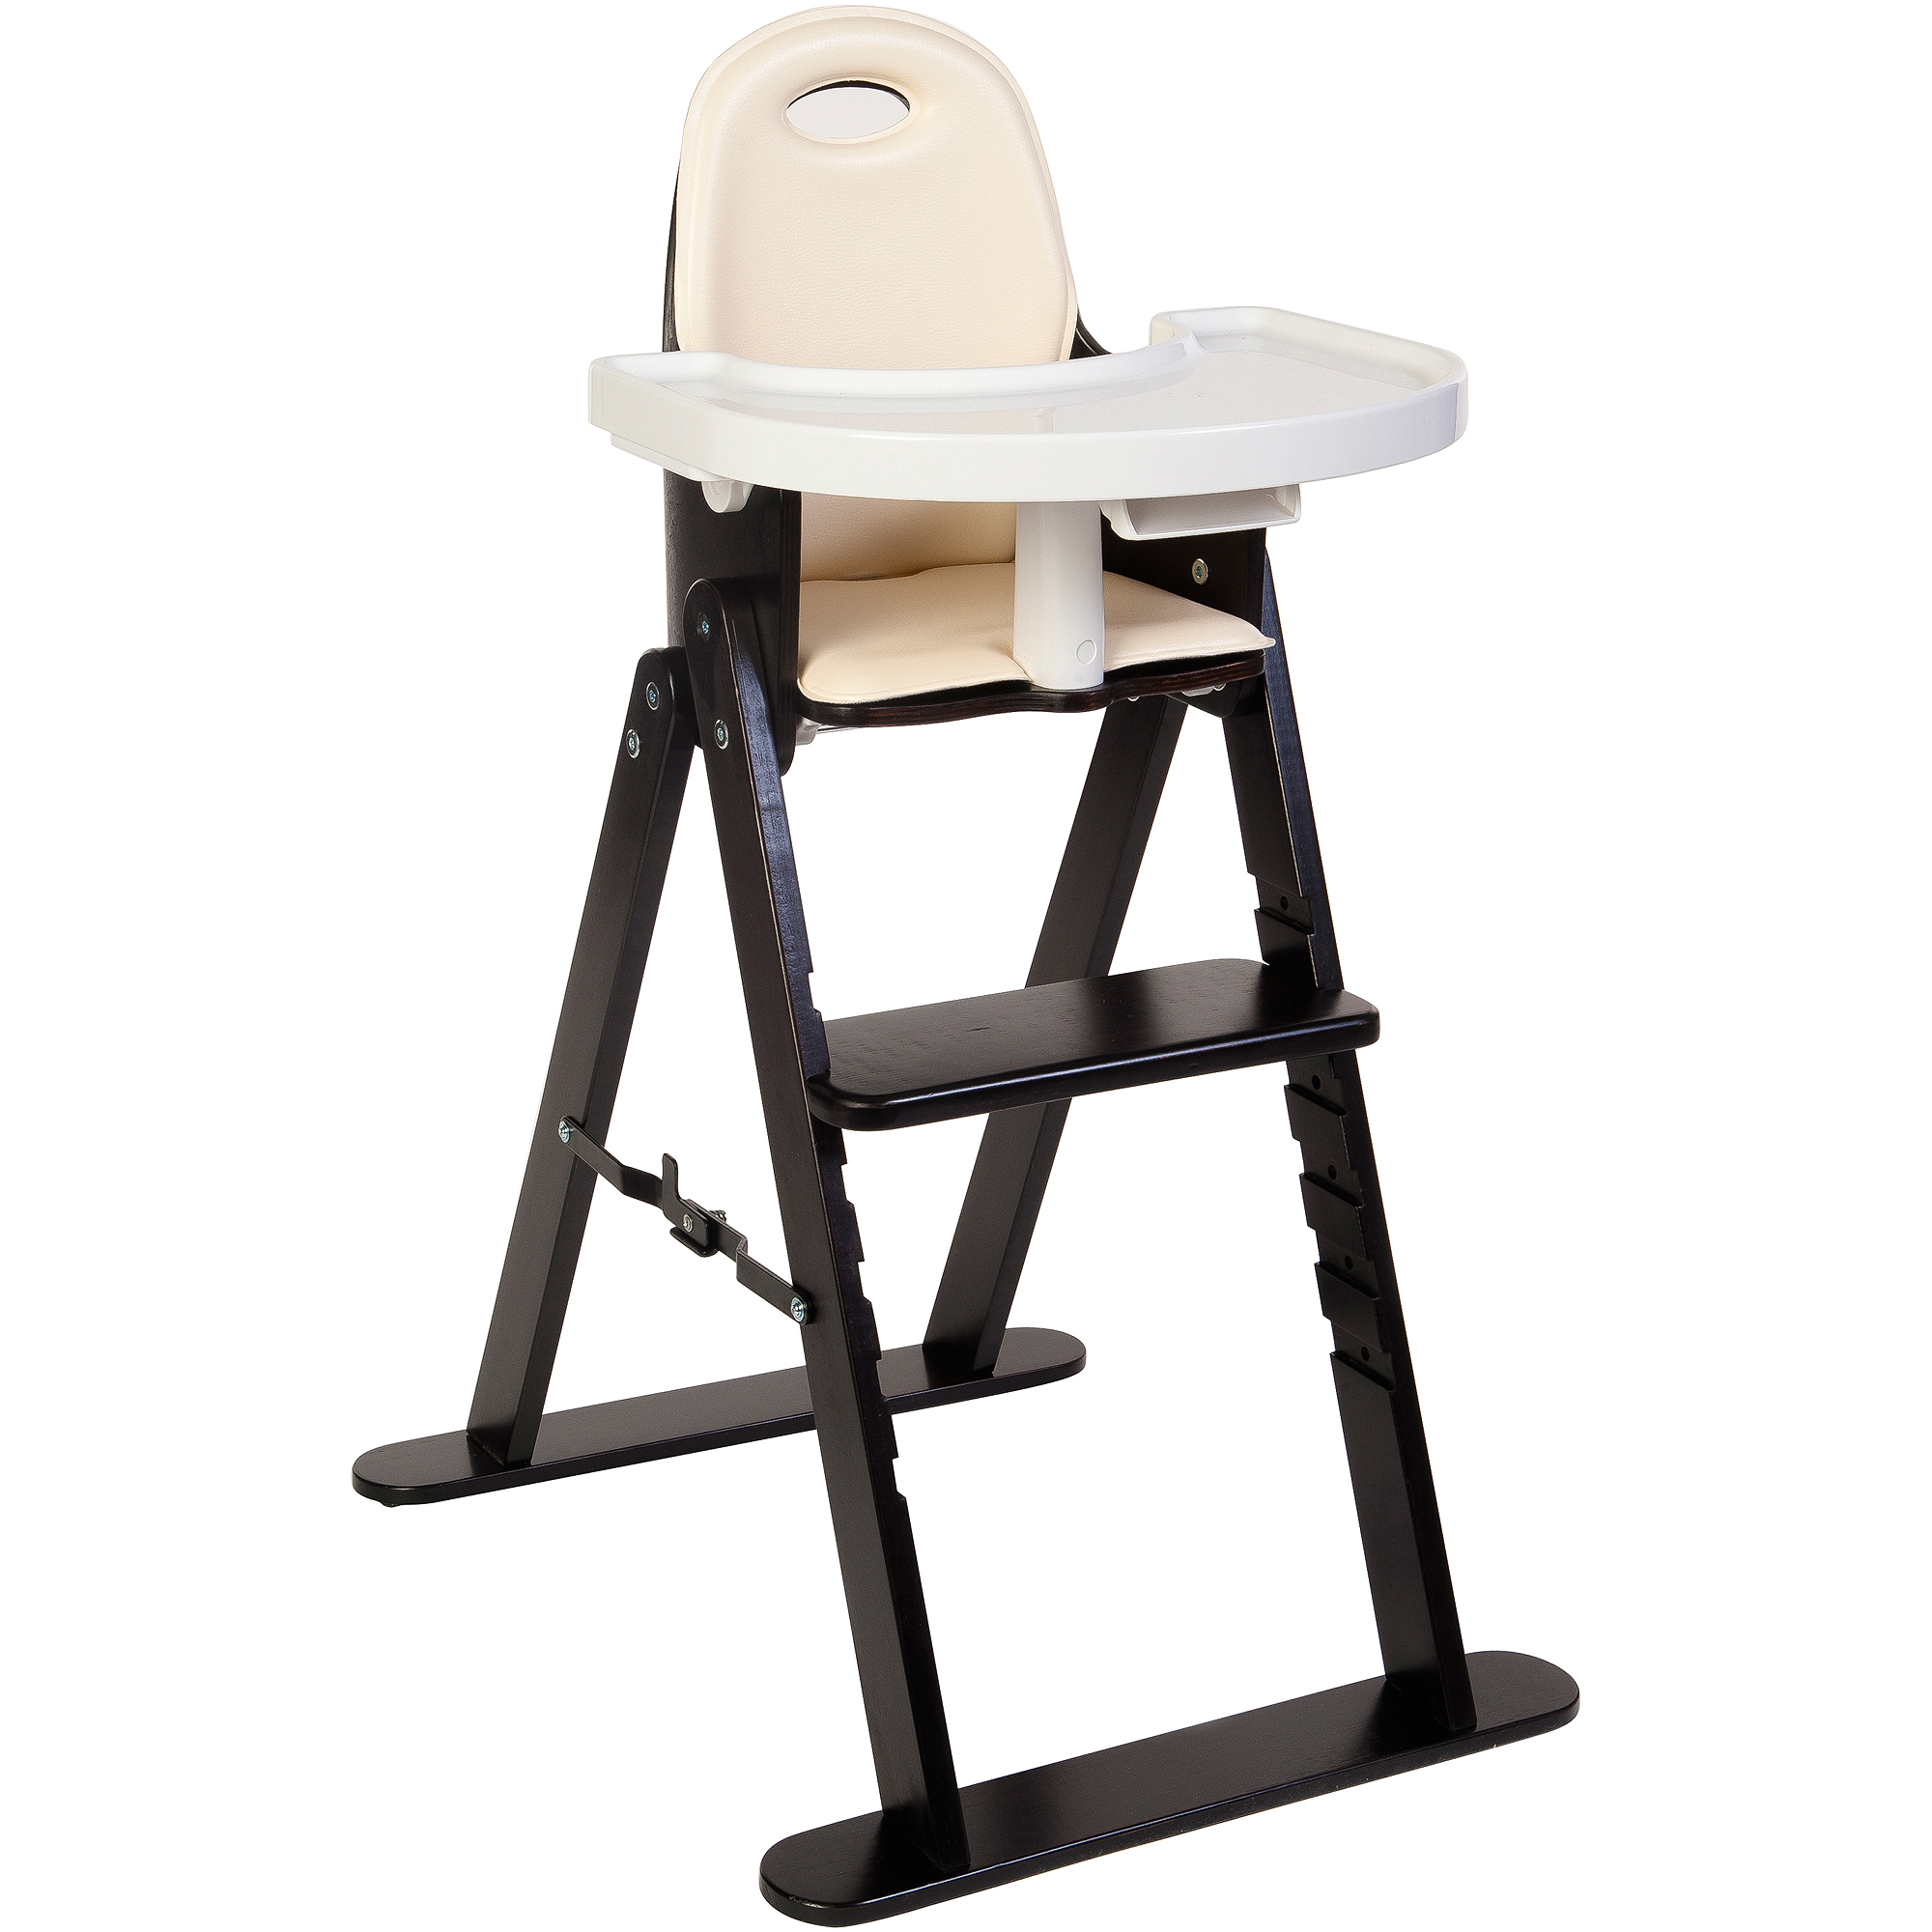 Phenomenal Svan Baby To Booster Bentwood High Chair Espresso Almond Cushion Gmtry Best Dining Table And Chair Ideas Images Gmtryco